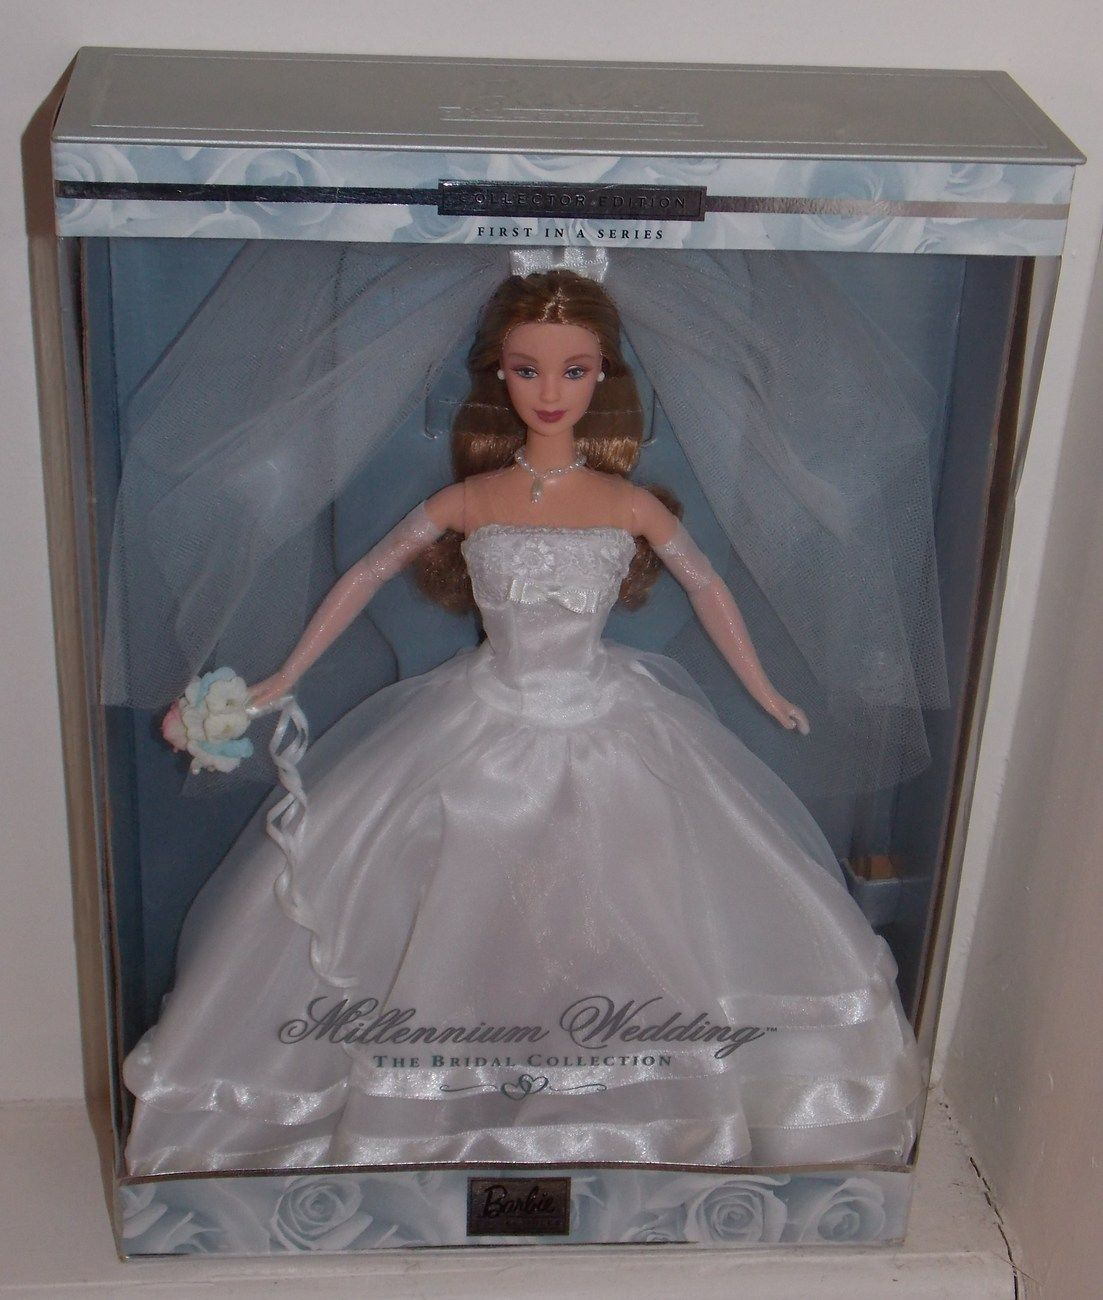 Dolly Bridal Collection: Millennium Wedding Barbie Doll Bridal Collection New In